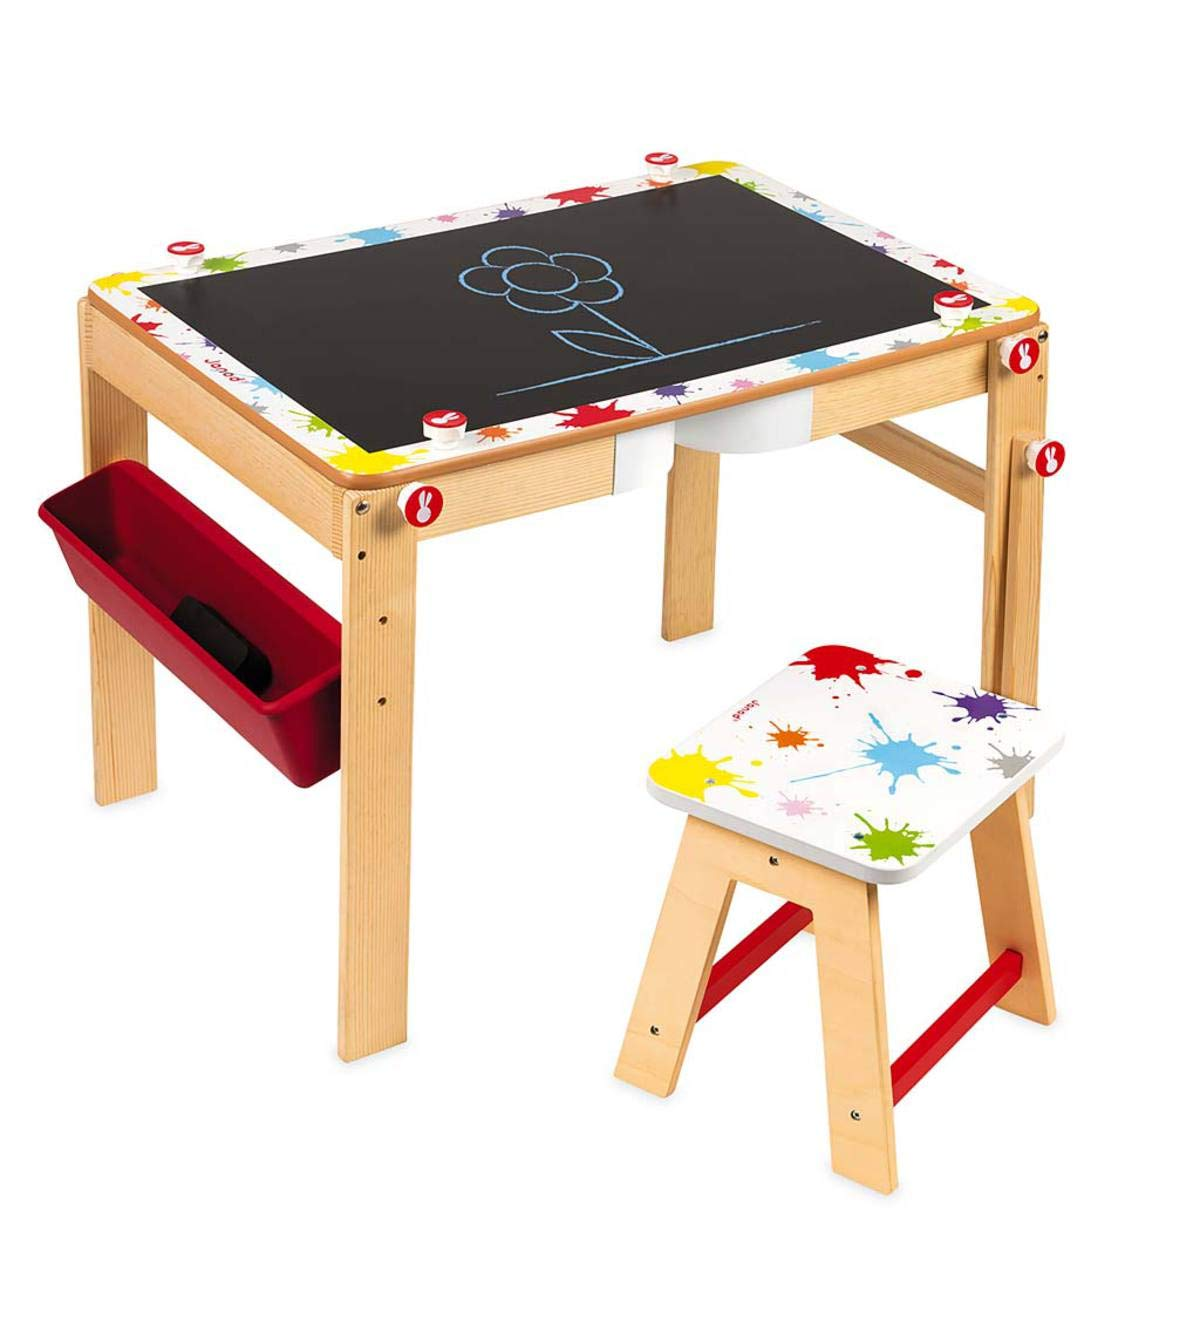 2-in-1 Convertible Art Station for Kids - Desk and Stool Special - Magnetic Whiteboard and Black Chalkboard - Includes Marker, Chalk, and Eraser, Storage Tray - 30 L x 20.5 W x 20.25 H Magic Cabin